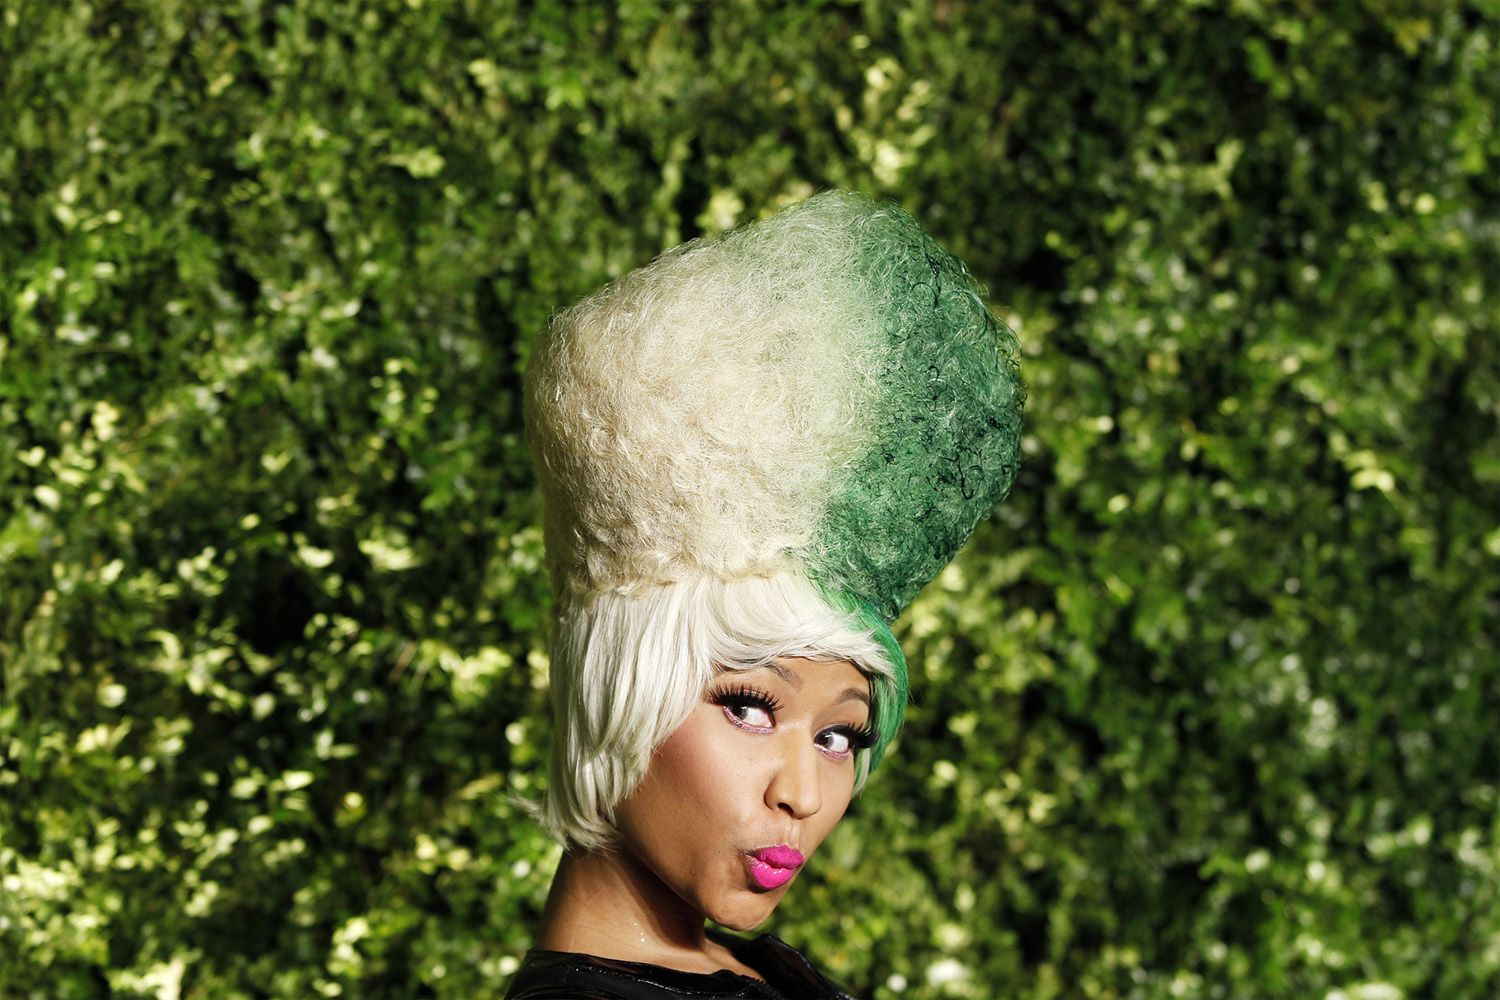 VAN WYCK Nicki Minaj at Christie's Green Auction.